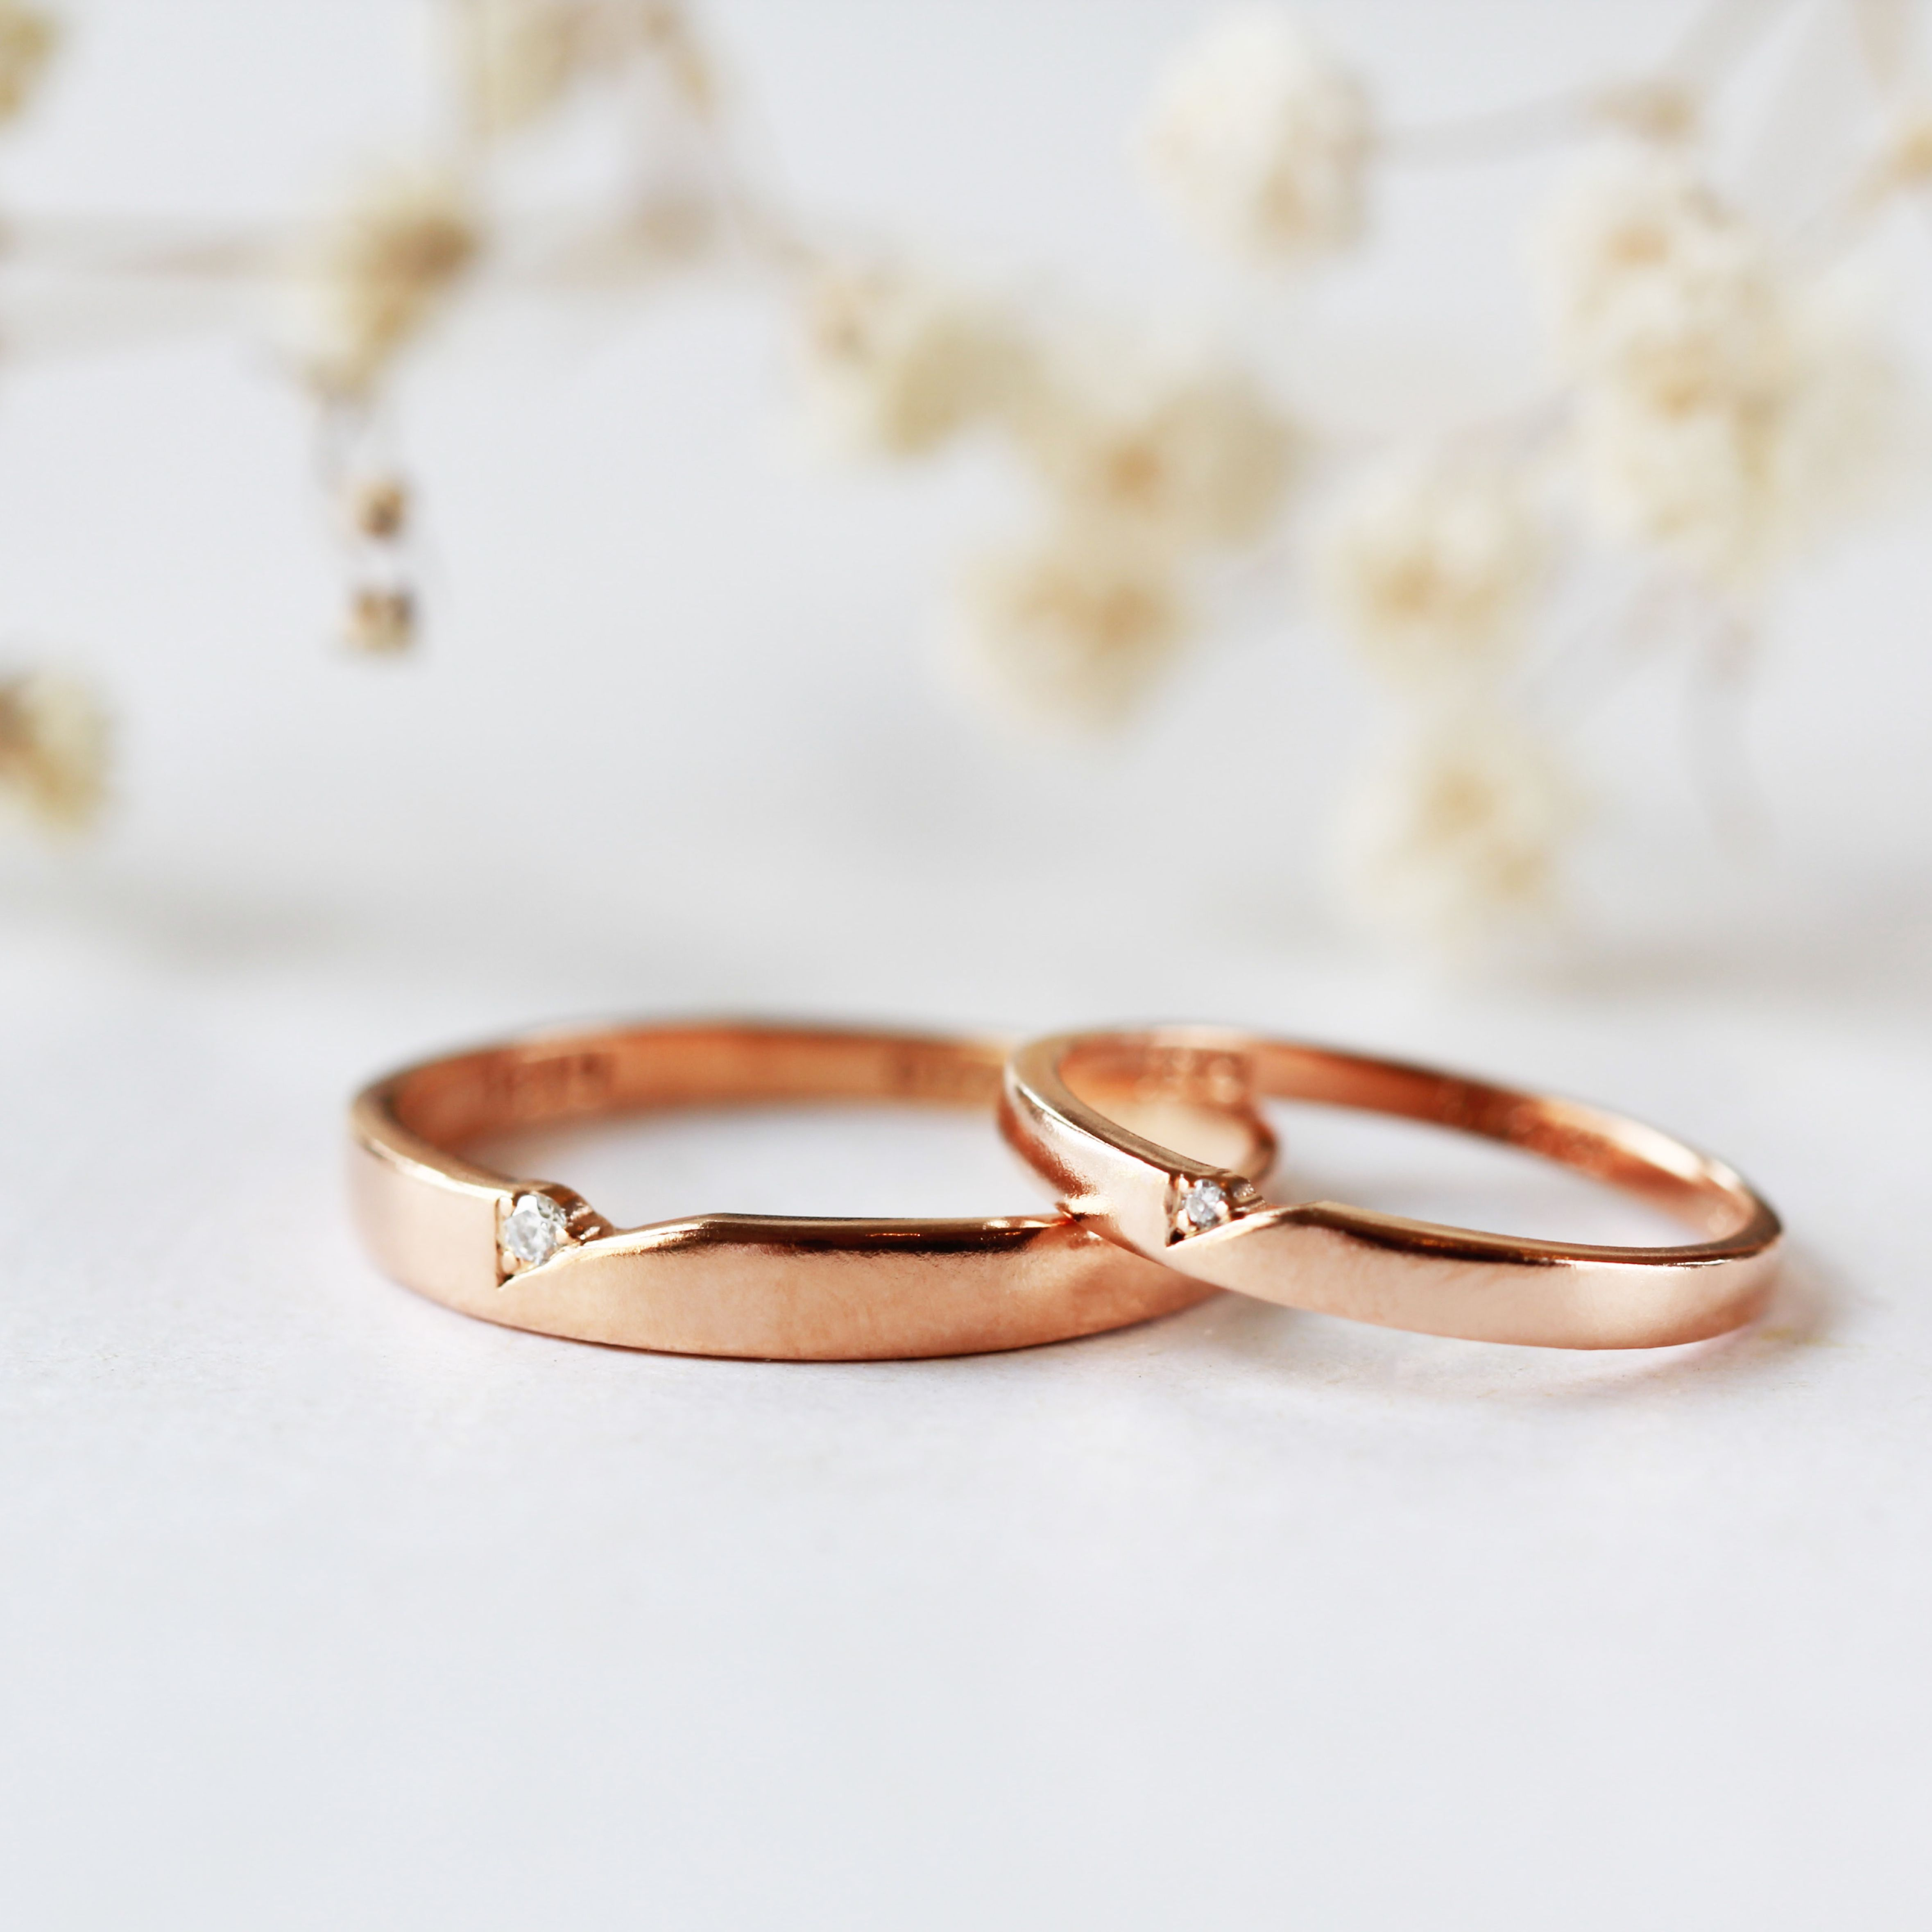 Modern Couple Ring Couples Ring Wedding Band Unique Wedding Rings Promise Ring 14k Rose Gold Wedd Couple Wedding Rings Wedding Rings Rose Gold Couples Ring Set